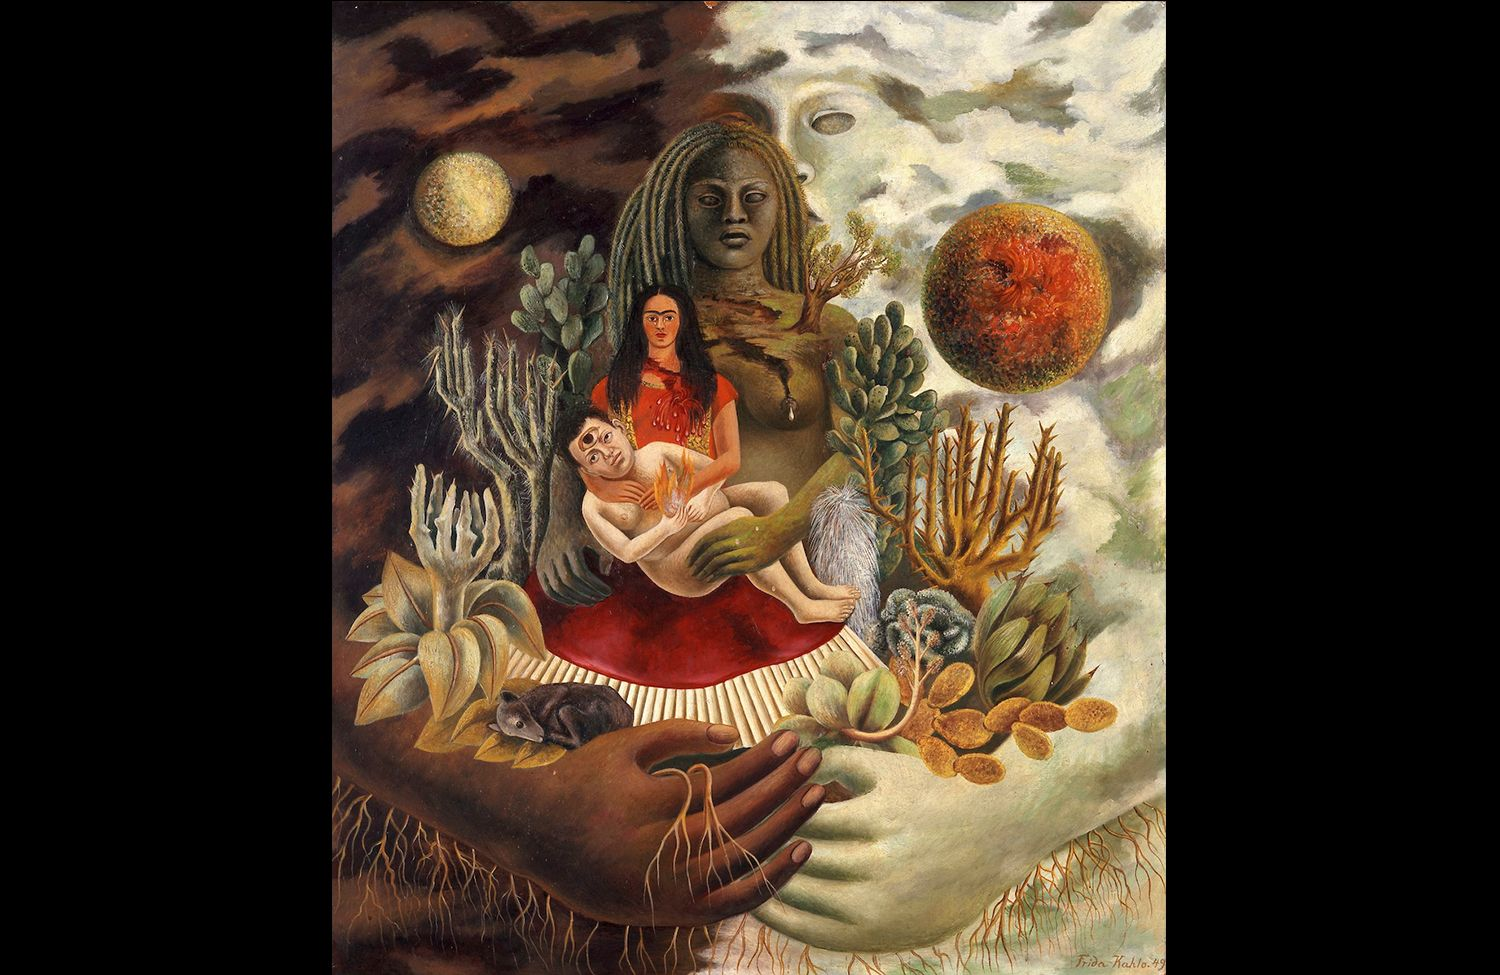 Frida Kahlo: Appearances Can Be Deceiving 8